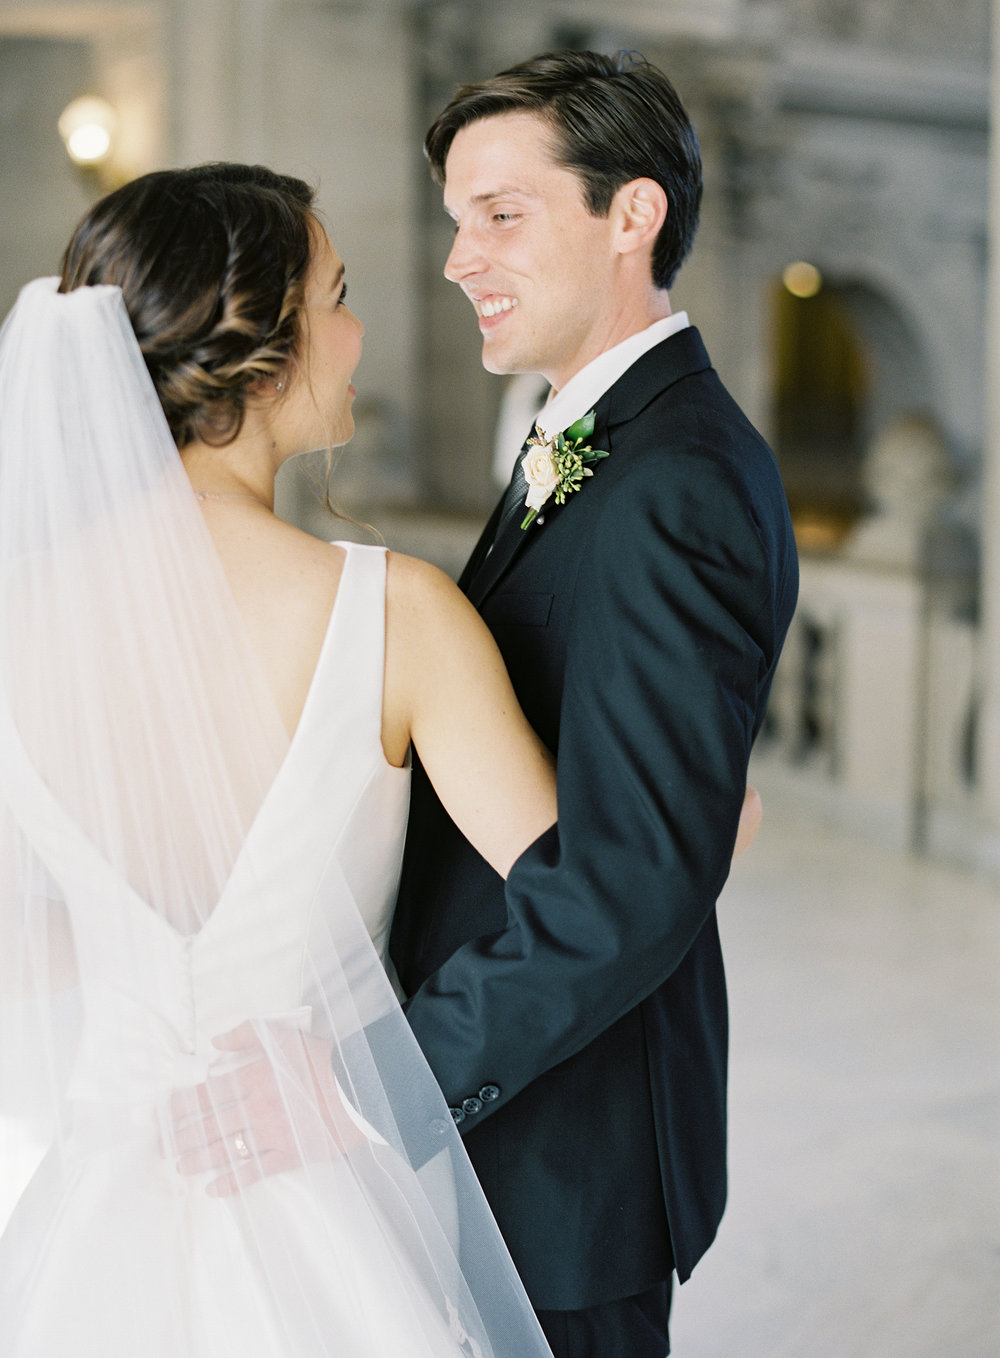 Meghan Mehan Photography - California Wedding Photographer | San Francisco City Hall Wedding 019.jpg